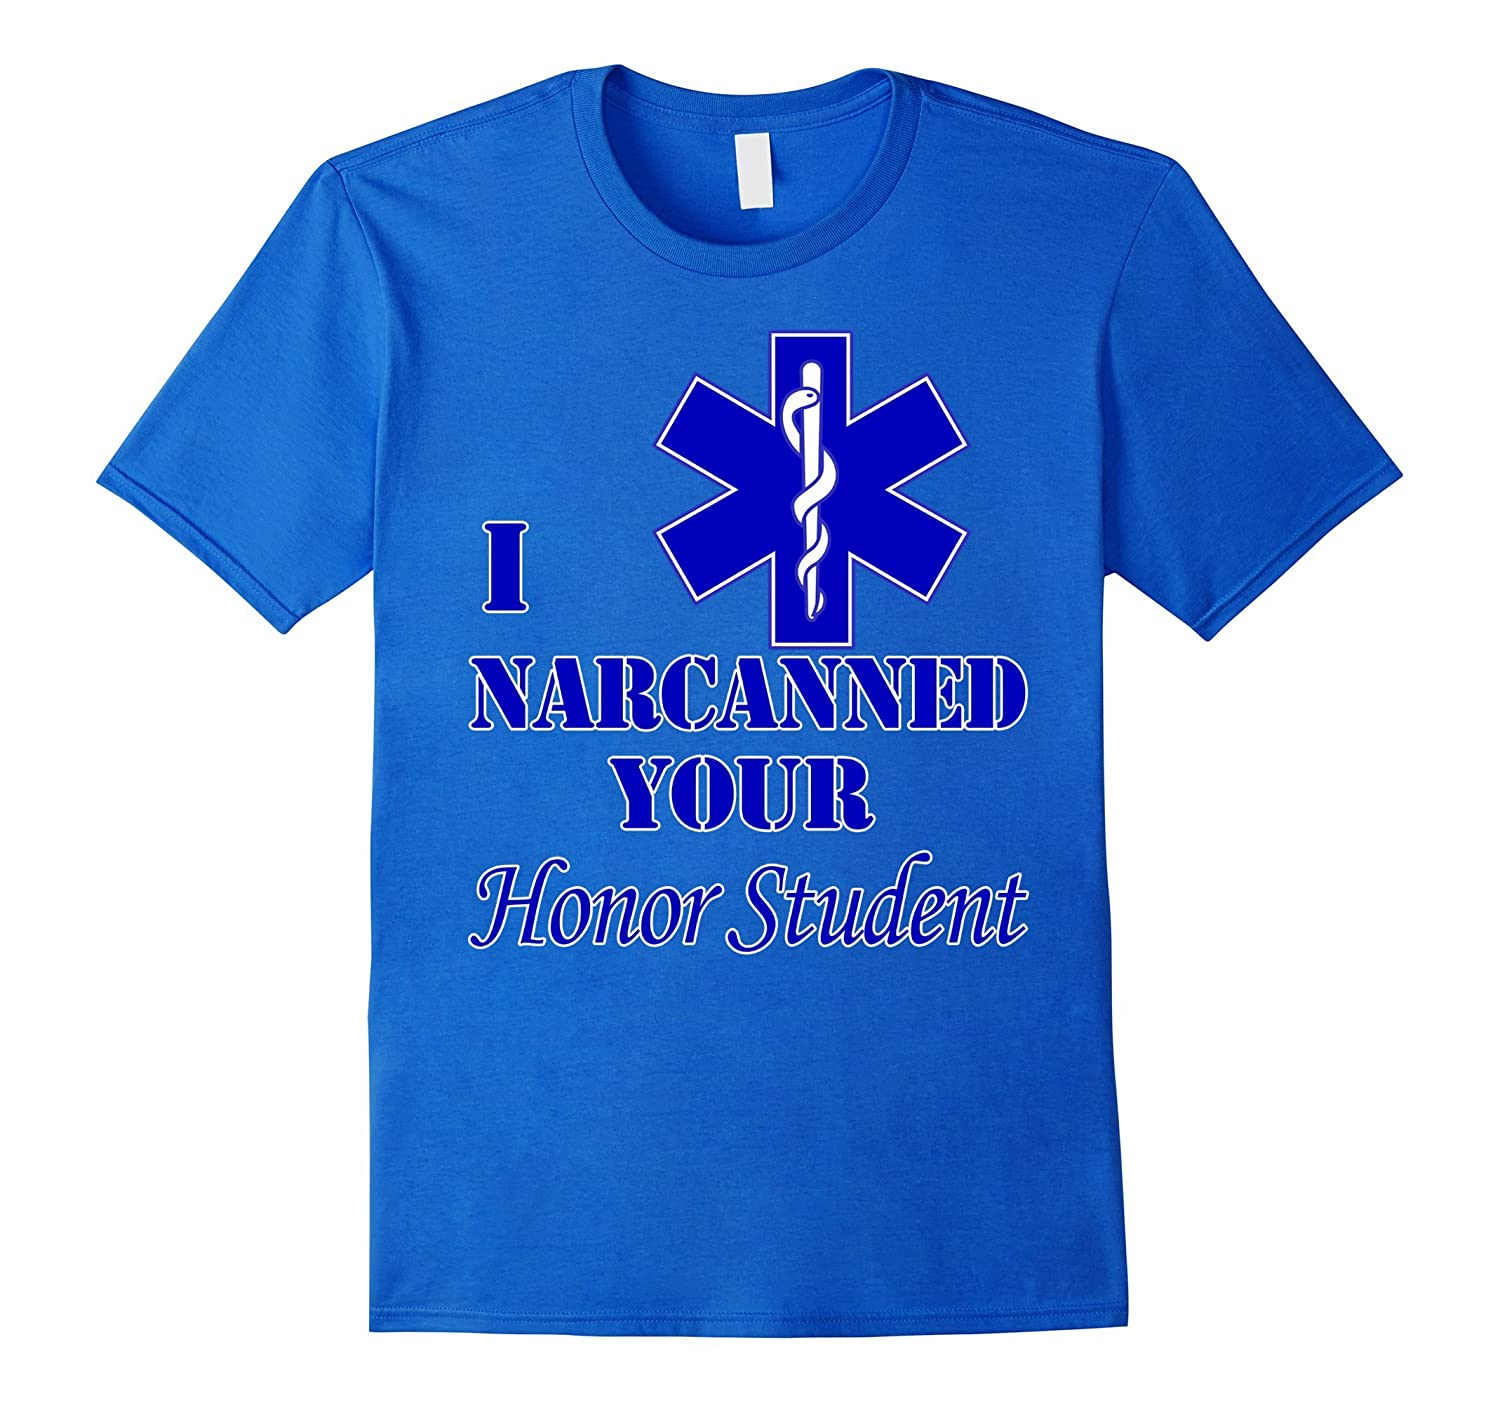 92b08721 I Narcanned Your Honor Student EMT First Responder T-Shirt-ah my shirt one